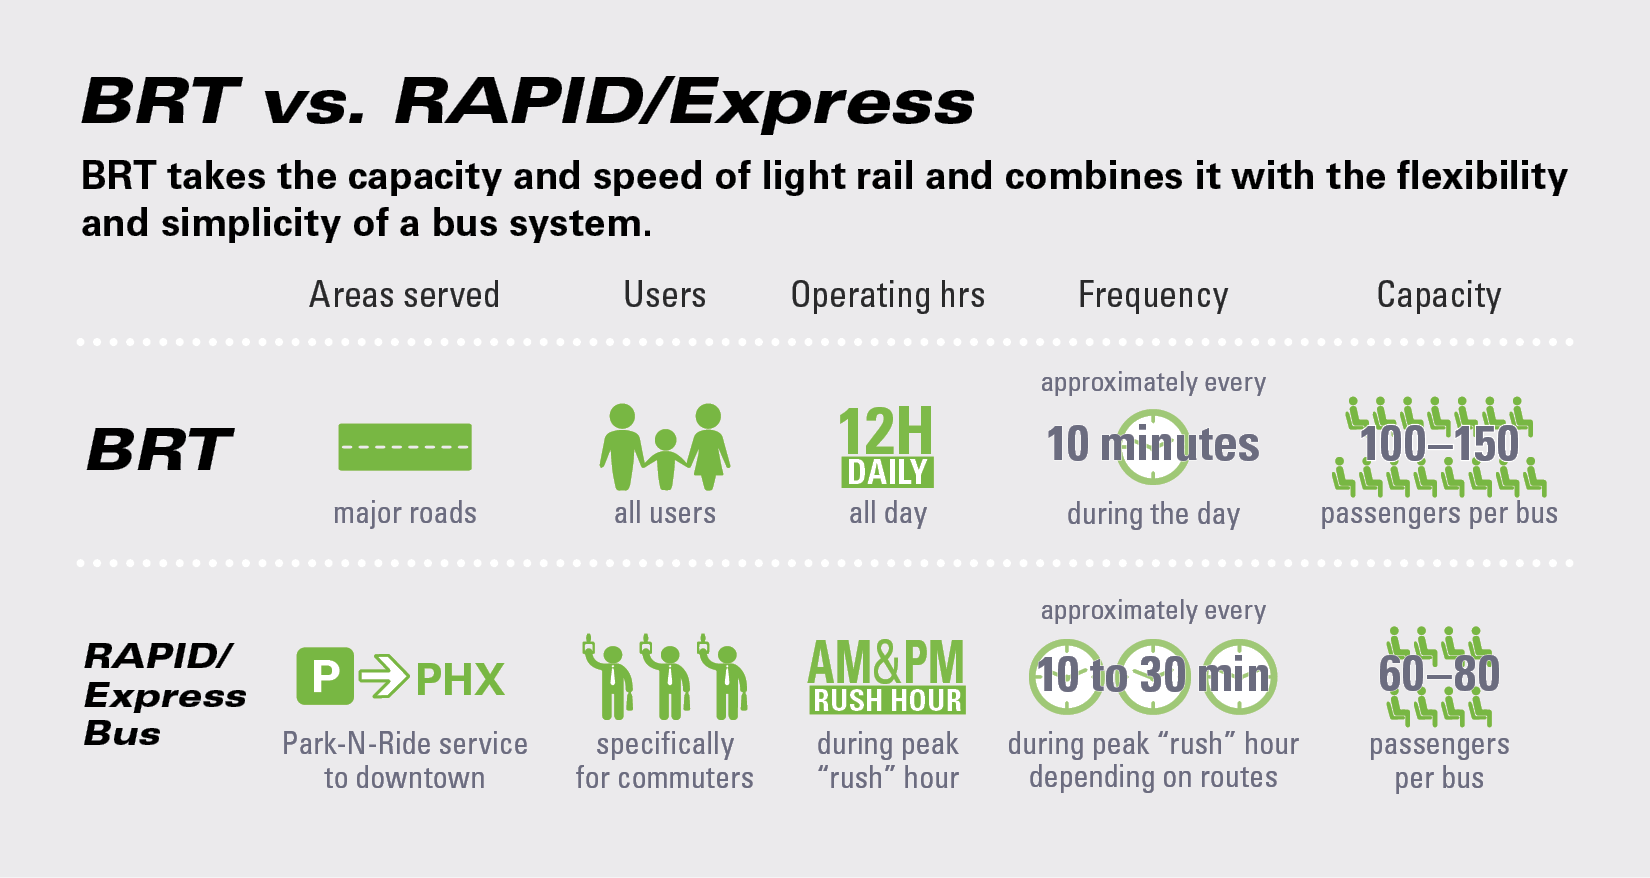 BRT versus RAPID and Express